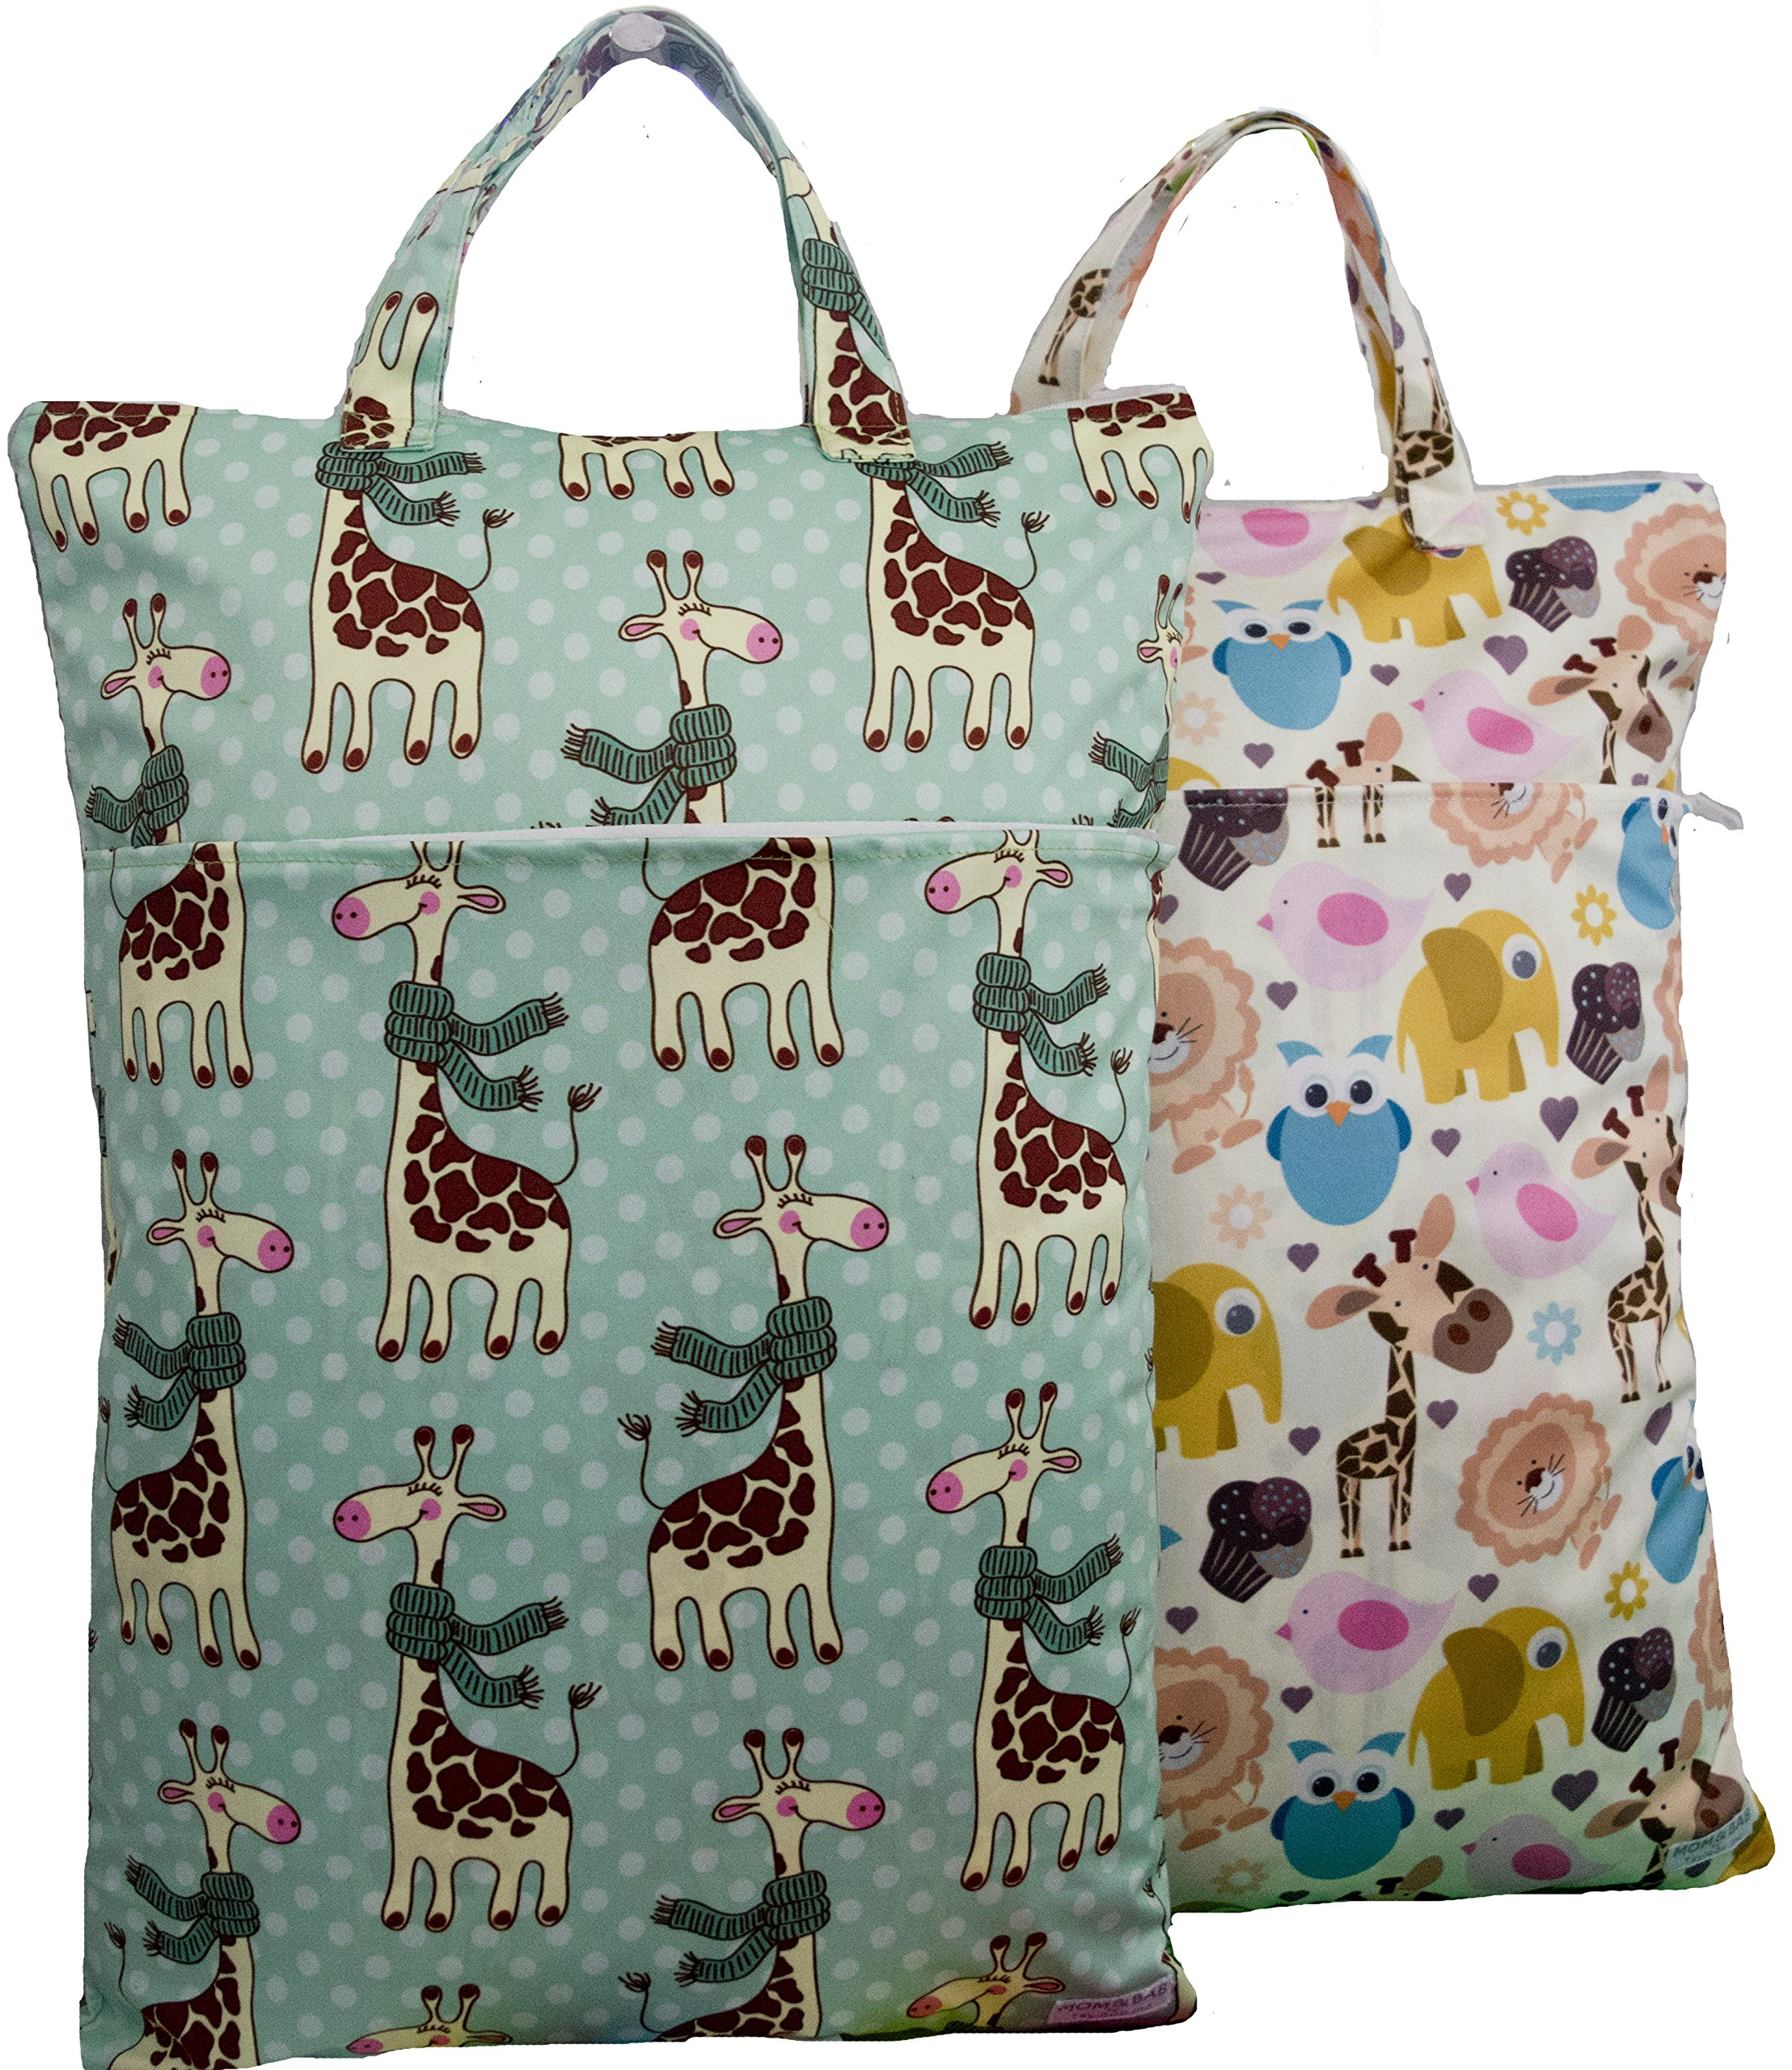 """2 Odor-Locking Wet Dry Bags - 12.5"""" Wide X 18"""" High   Double Compartment    Masks Odors  Fits 10 Diapers   Uses: Cloth Diapers, Daycare, Swimwear, Gym, Travel, Soiled Baby Items (Animals & Giraffe)"""